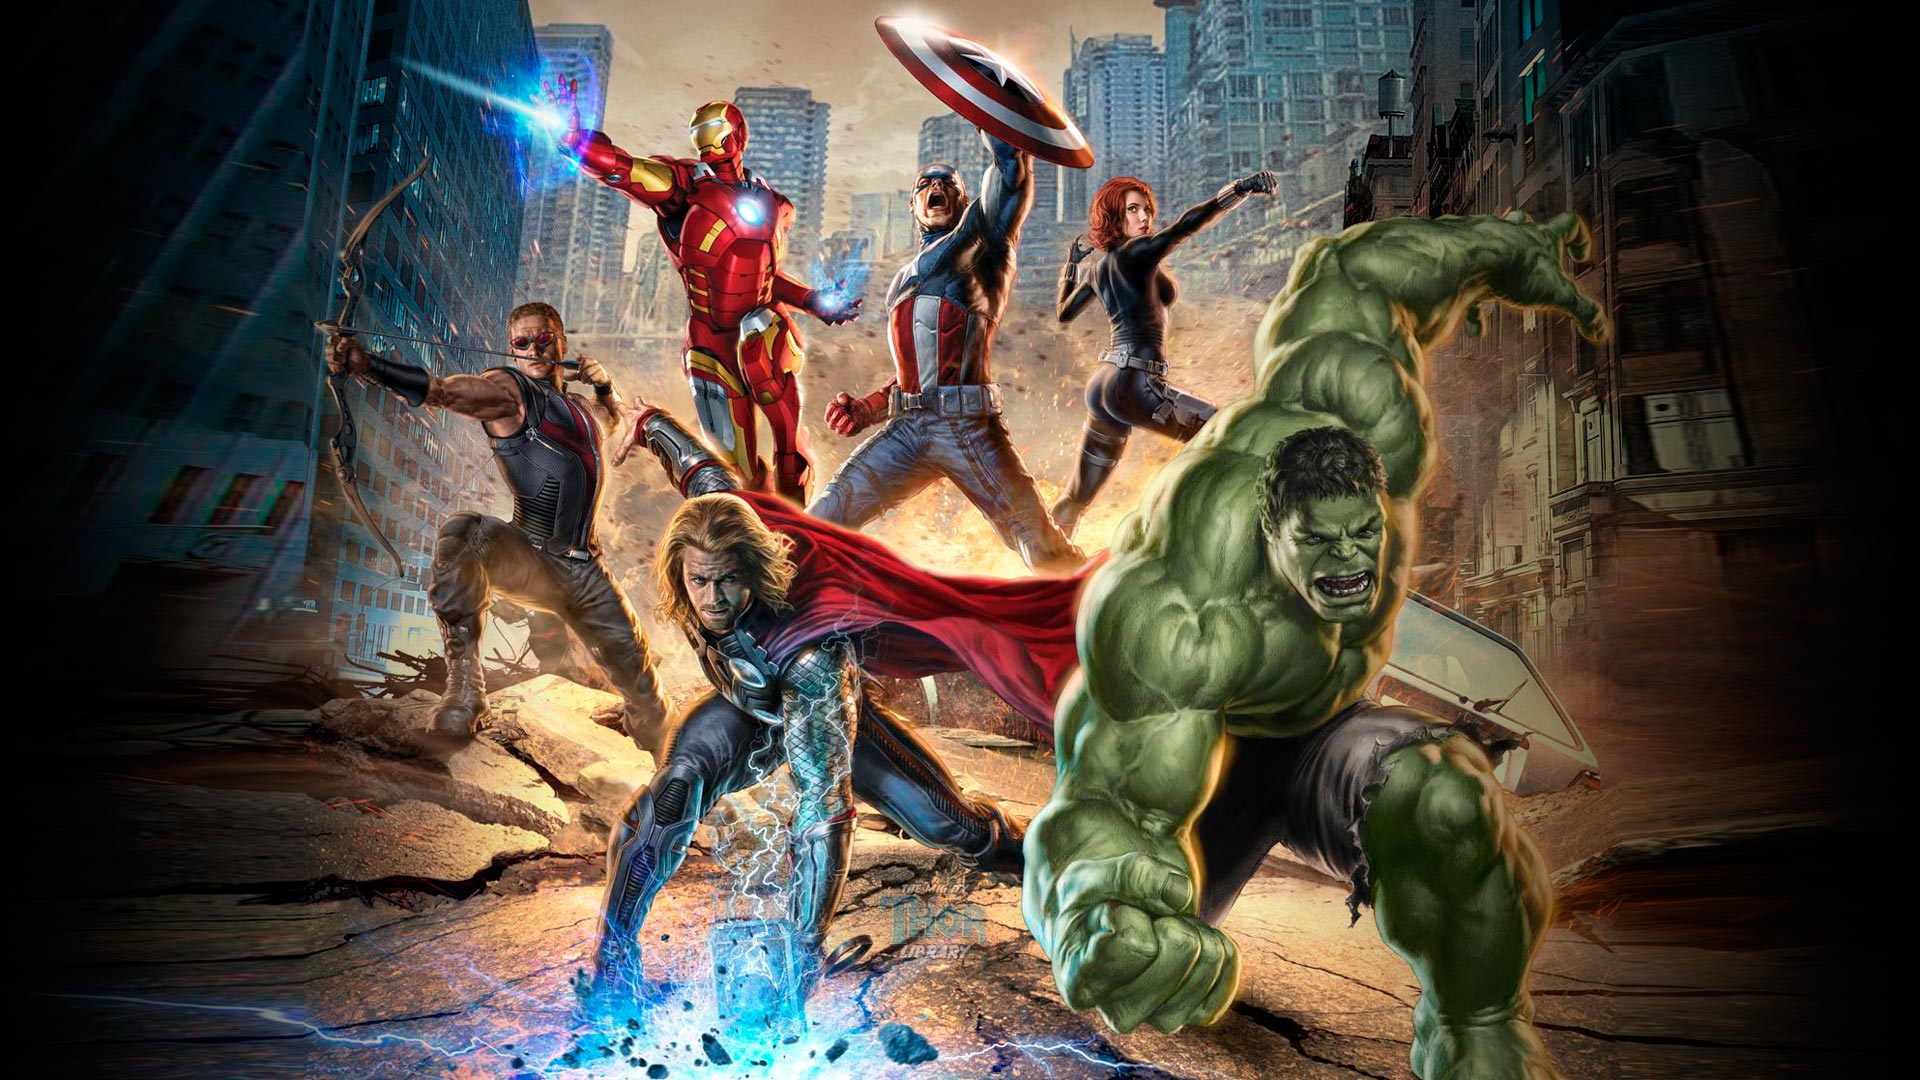 Superhero Gallery Library Incredible Movie Avengers wallpapers HD 1920x1080